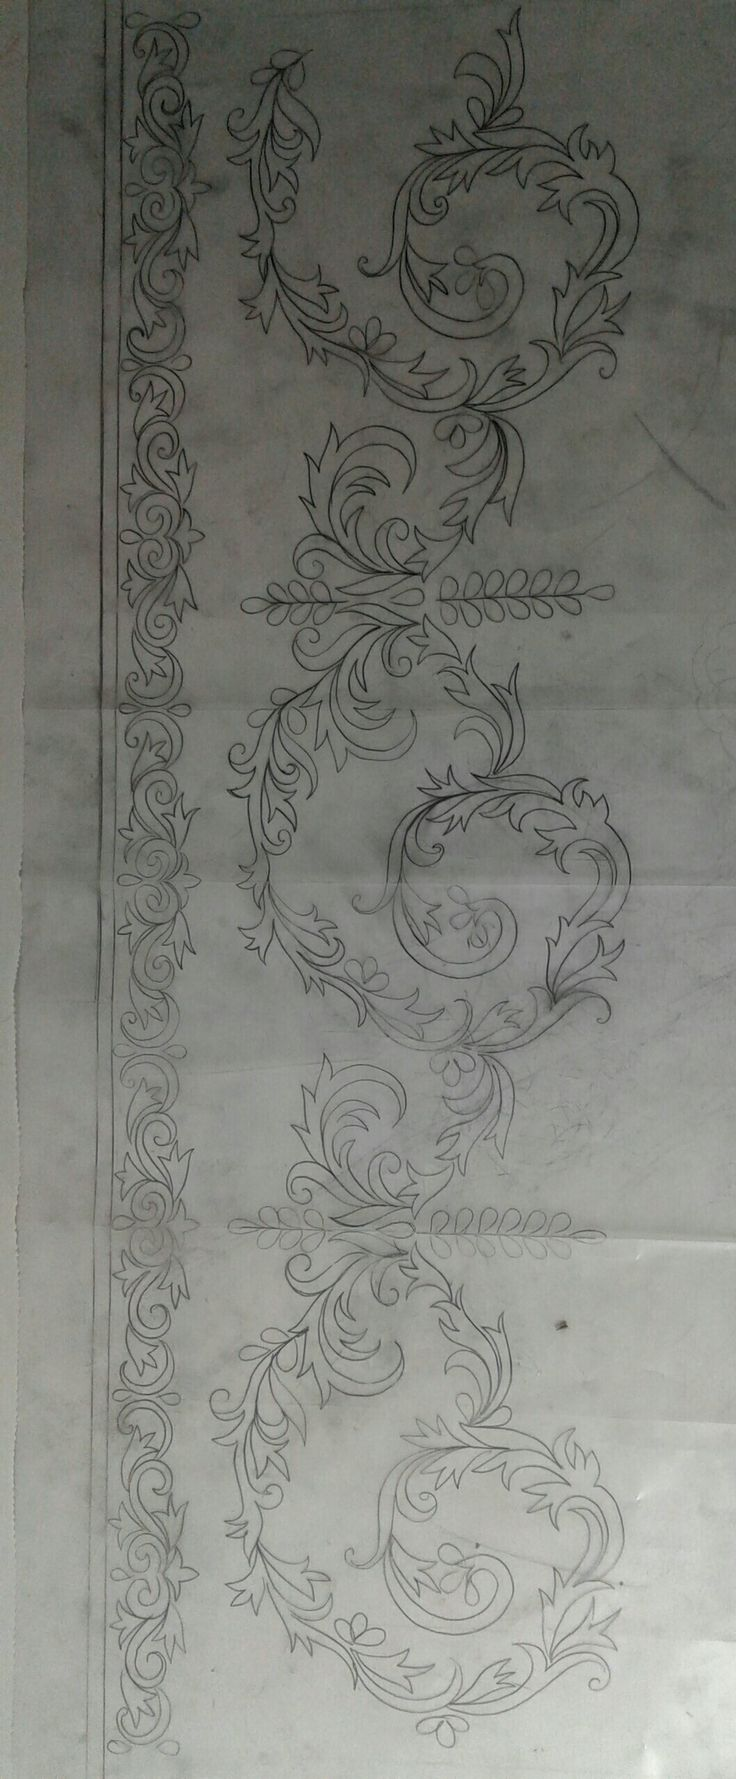 Design for embroidery or Tambour Beading